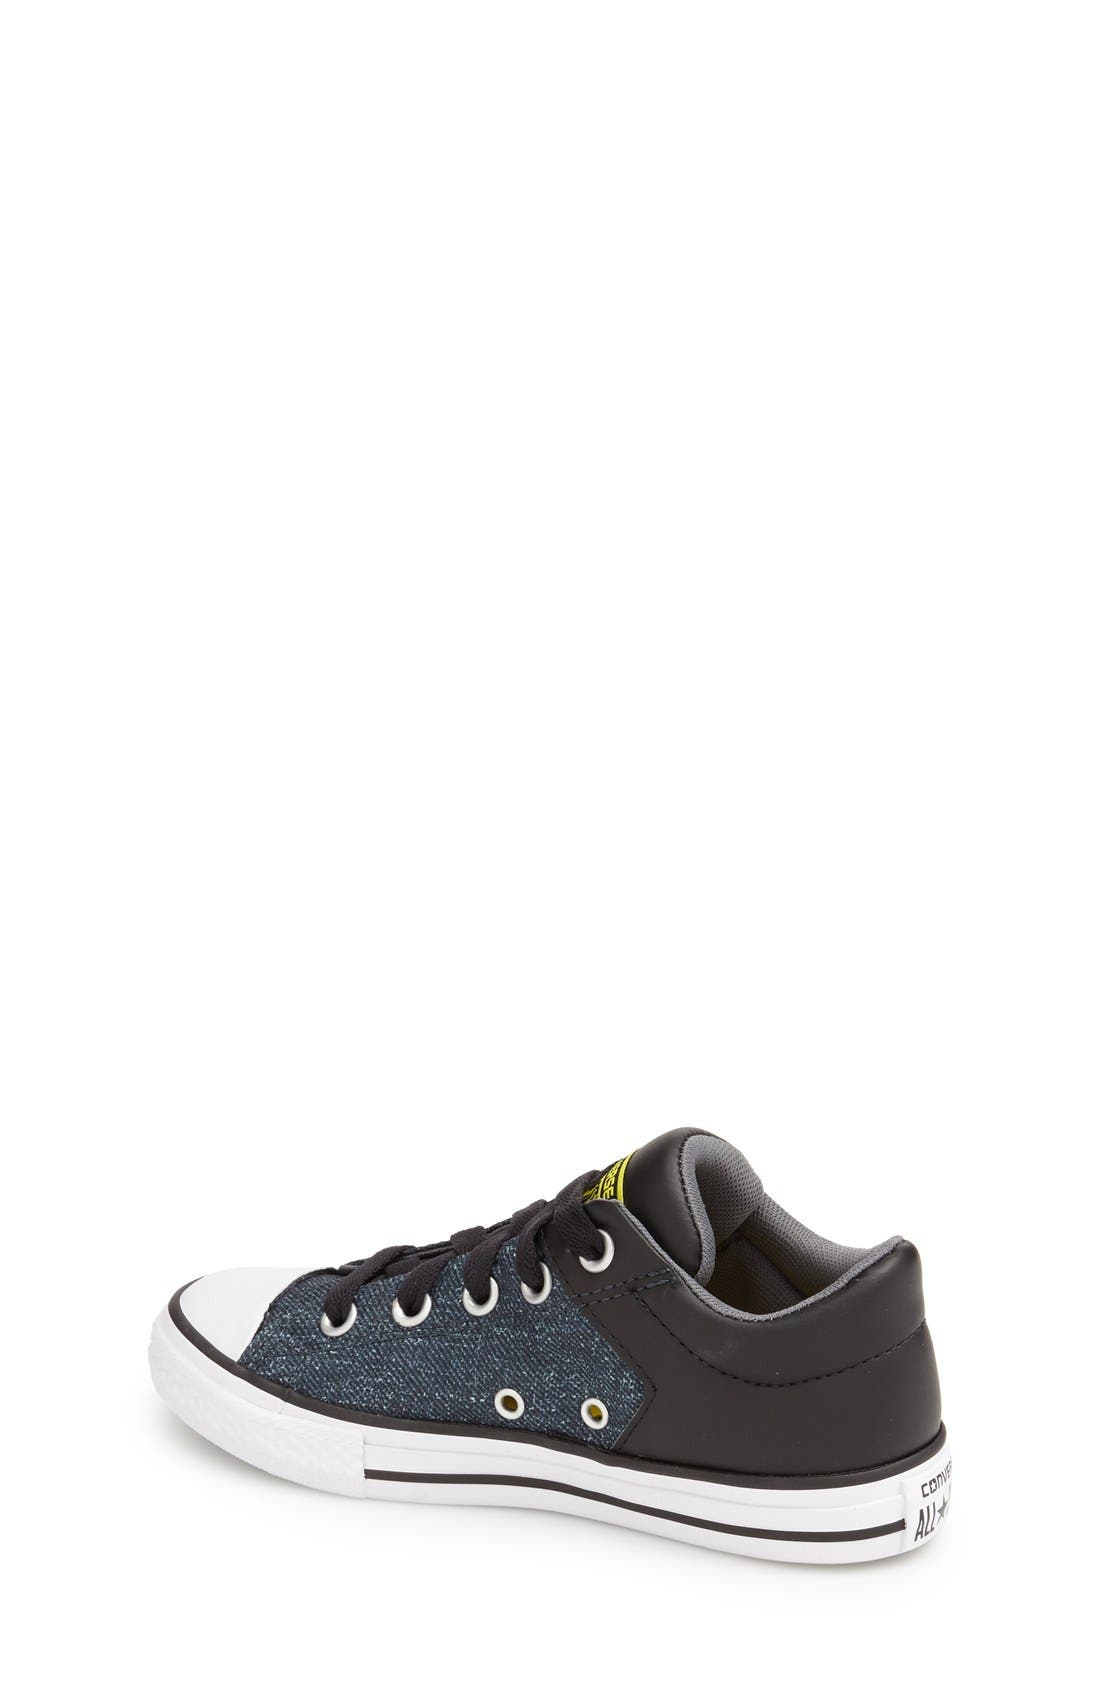 Chuck Taylor<sup>®</sup> All Star<sup>®</sup> 'High Street' Slip-On Sneaker,                             Alternate thumbnail 11, color,